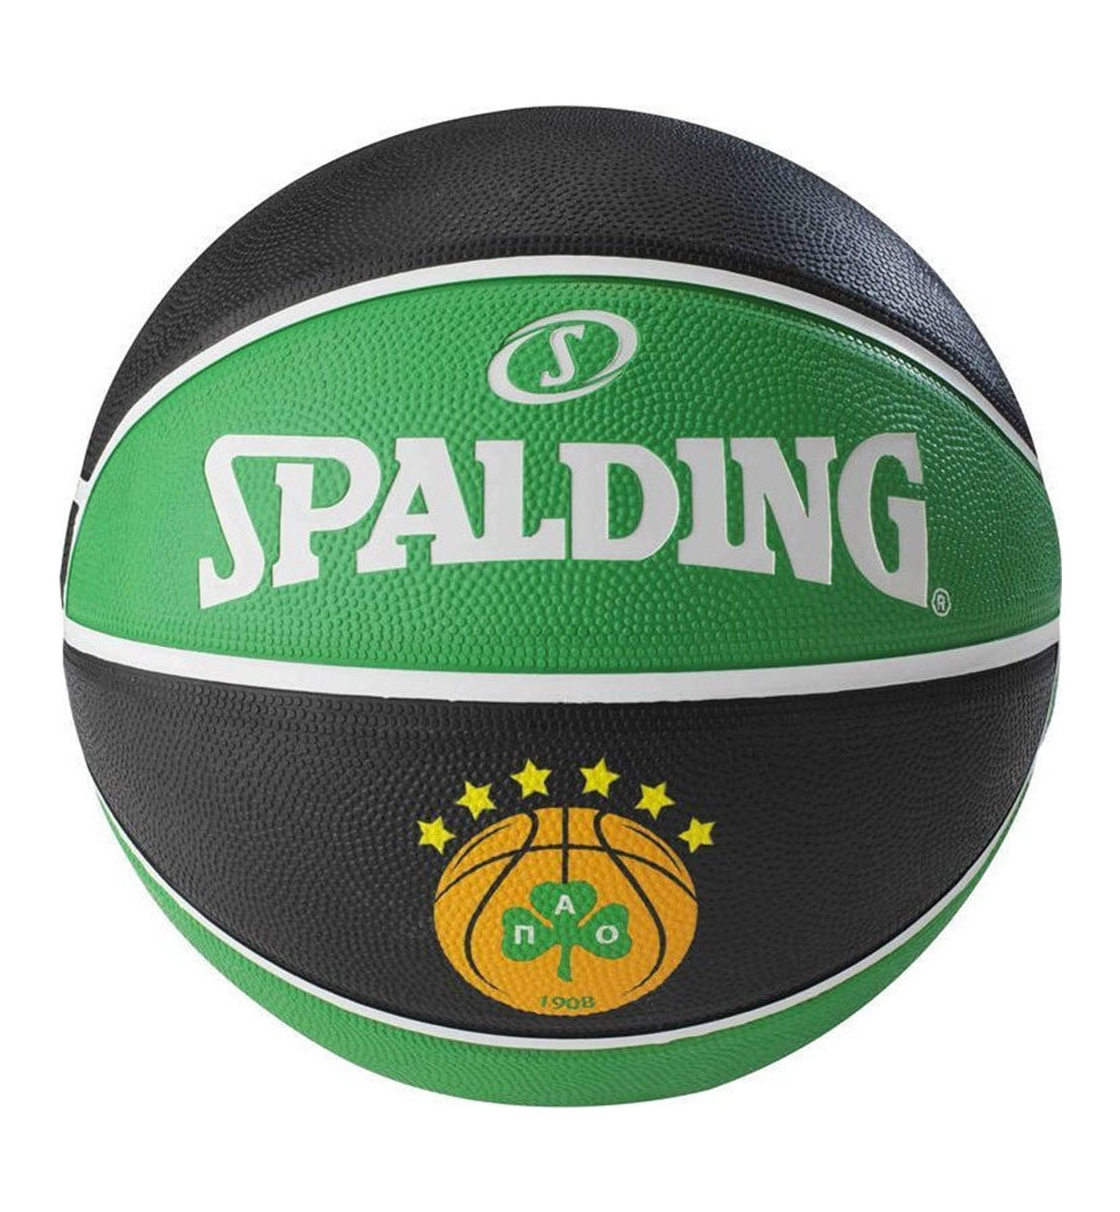 Spalding Μπάλα Basket Fw19 New Panathinaikos Athens Euroleague Team Rubb 83-786Z1